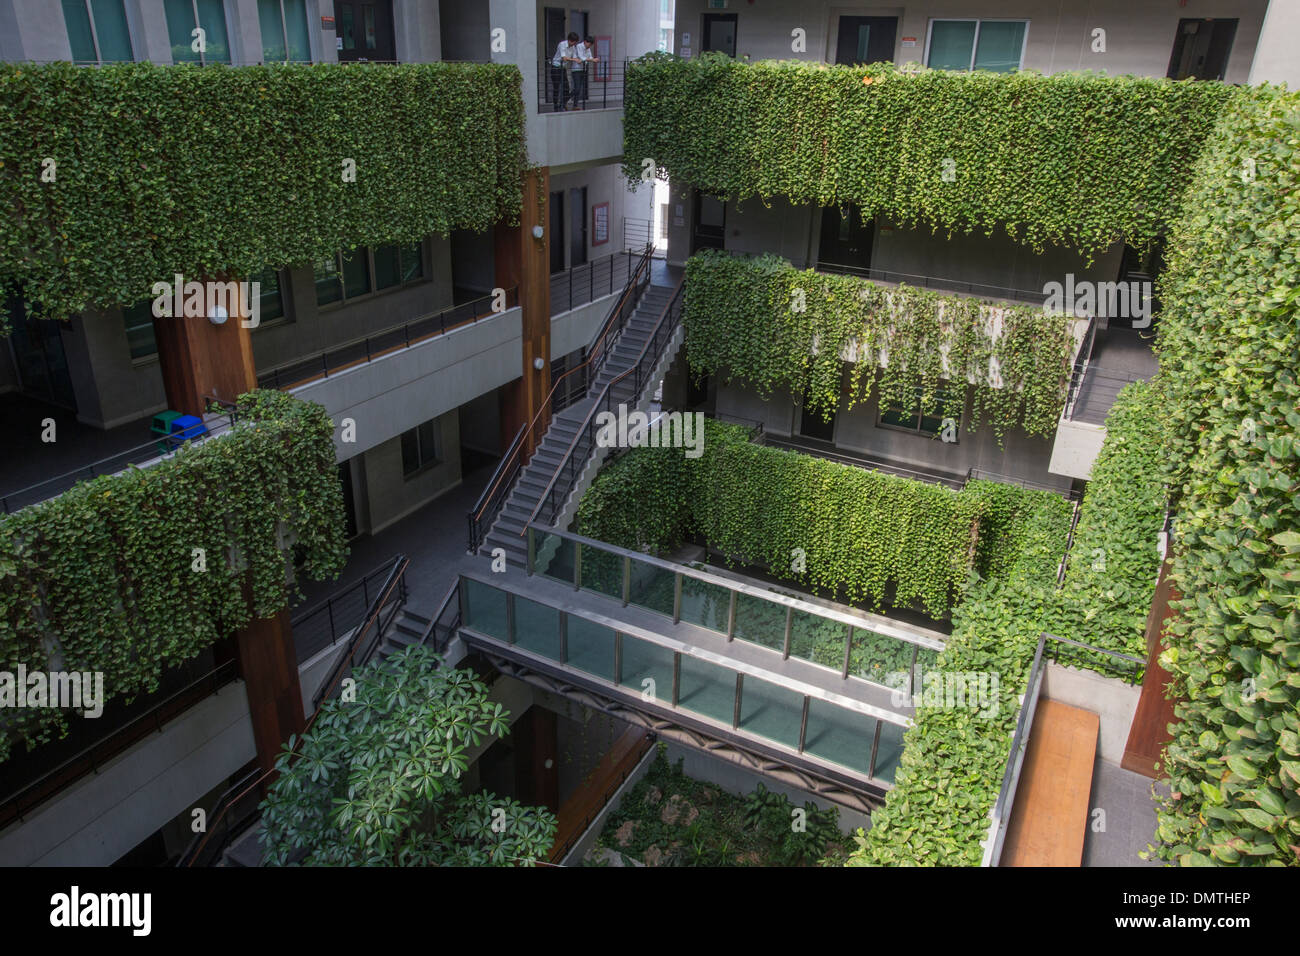 Vertical Garden Green Wall At Kasetsart University Faculty Of Economics.    Stock Image